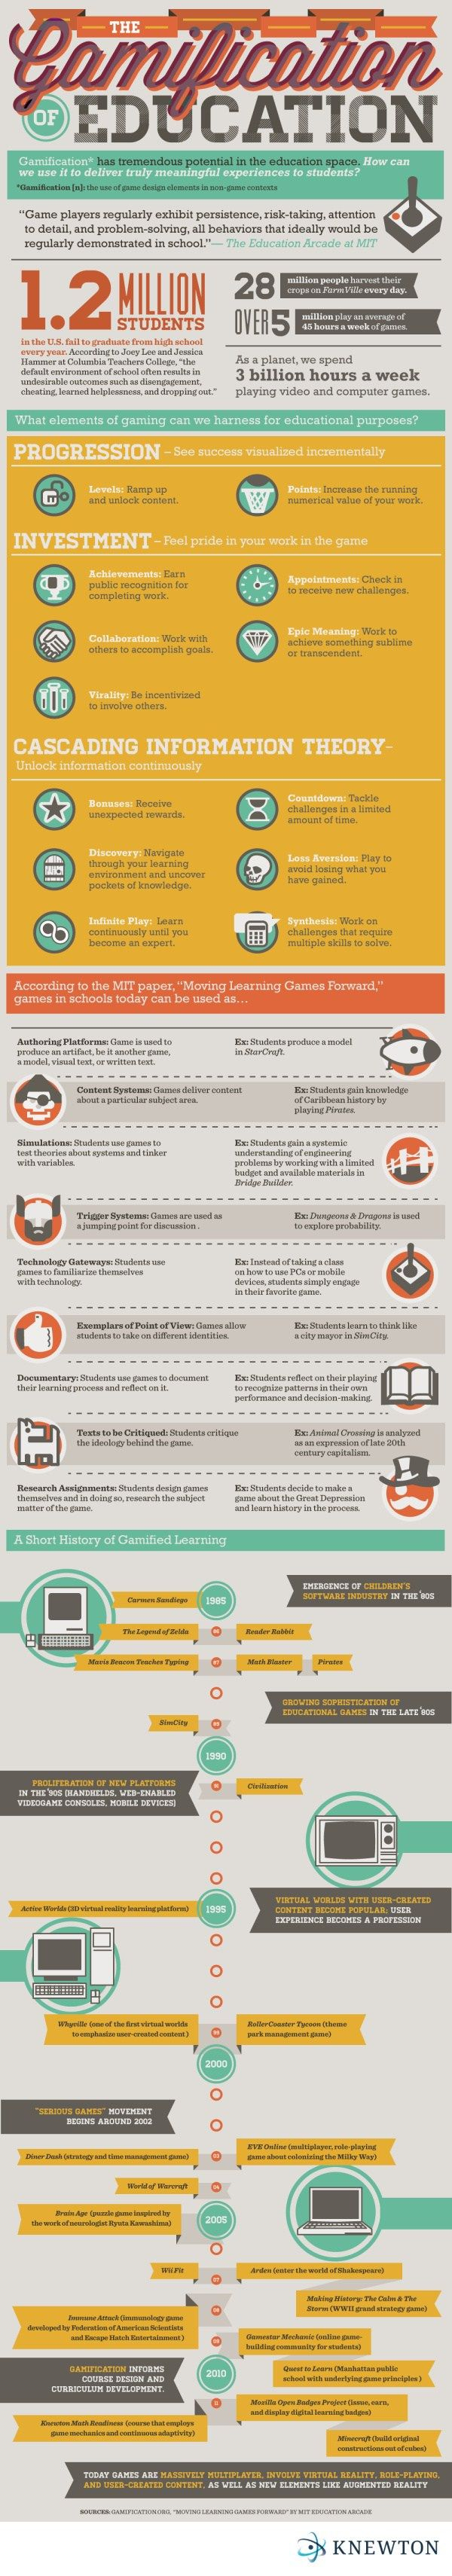 Educational : Infographic: About the Gamification of Education